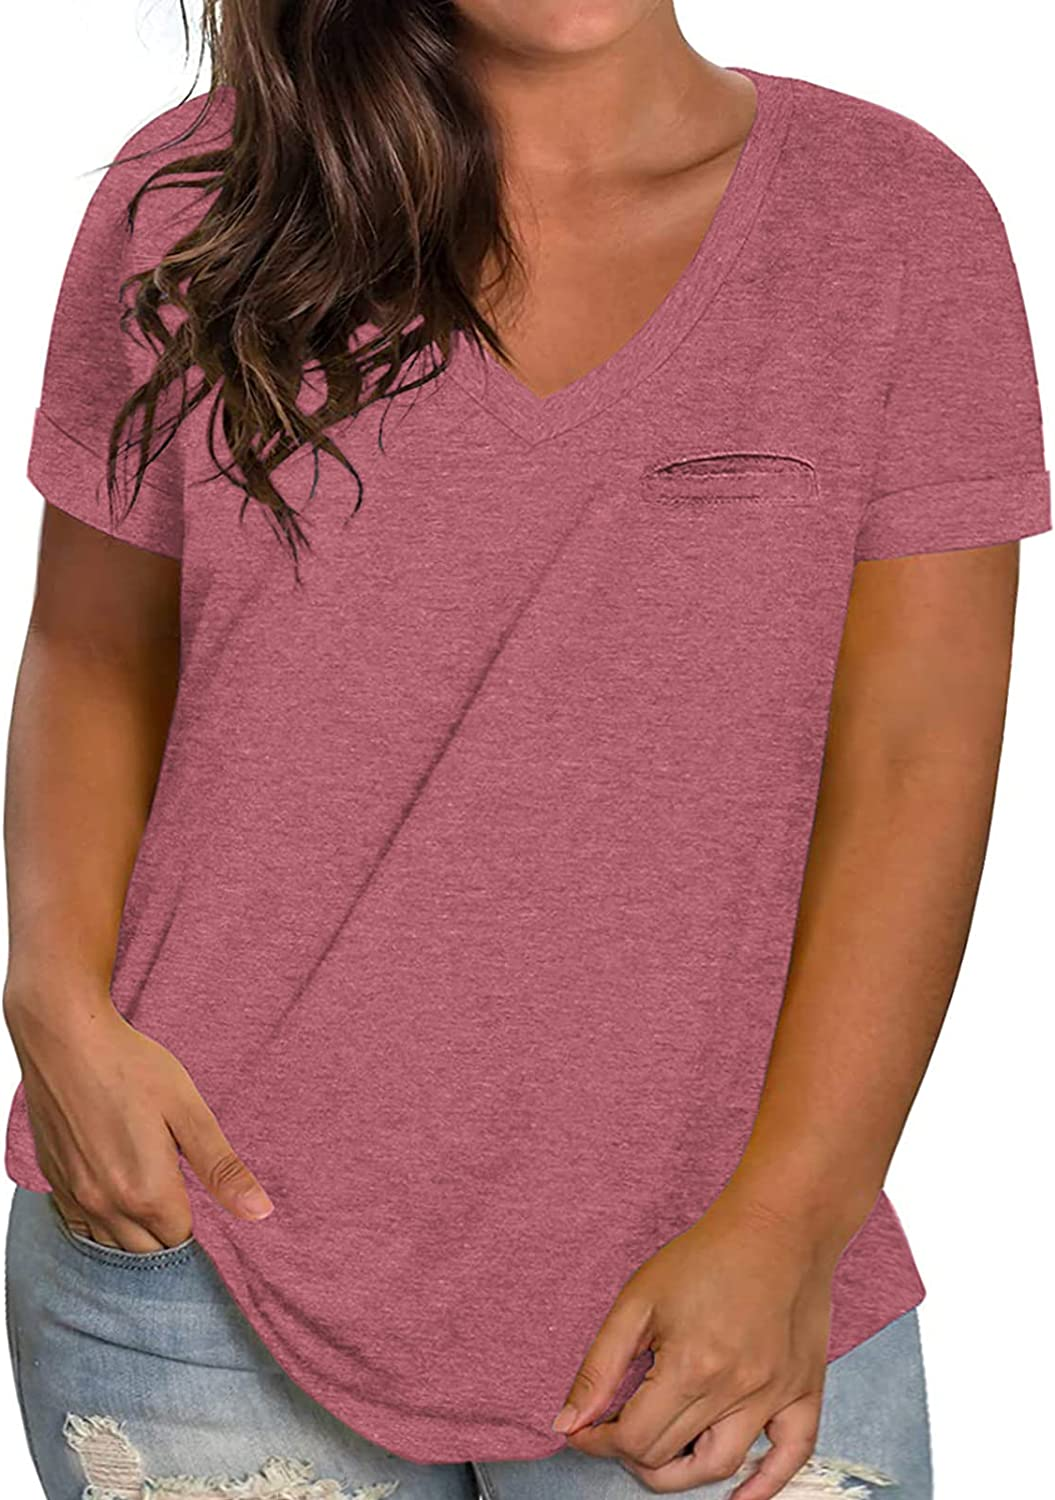 ROSRISS Womens Plus-Size V Neck T Ranking TOP19 Shor Shirts Tops Summer Rolled Ranking TOP19